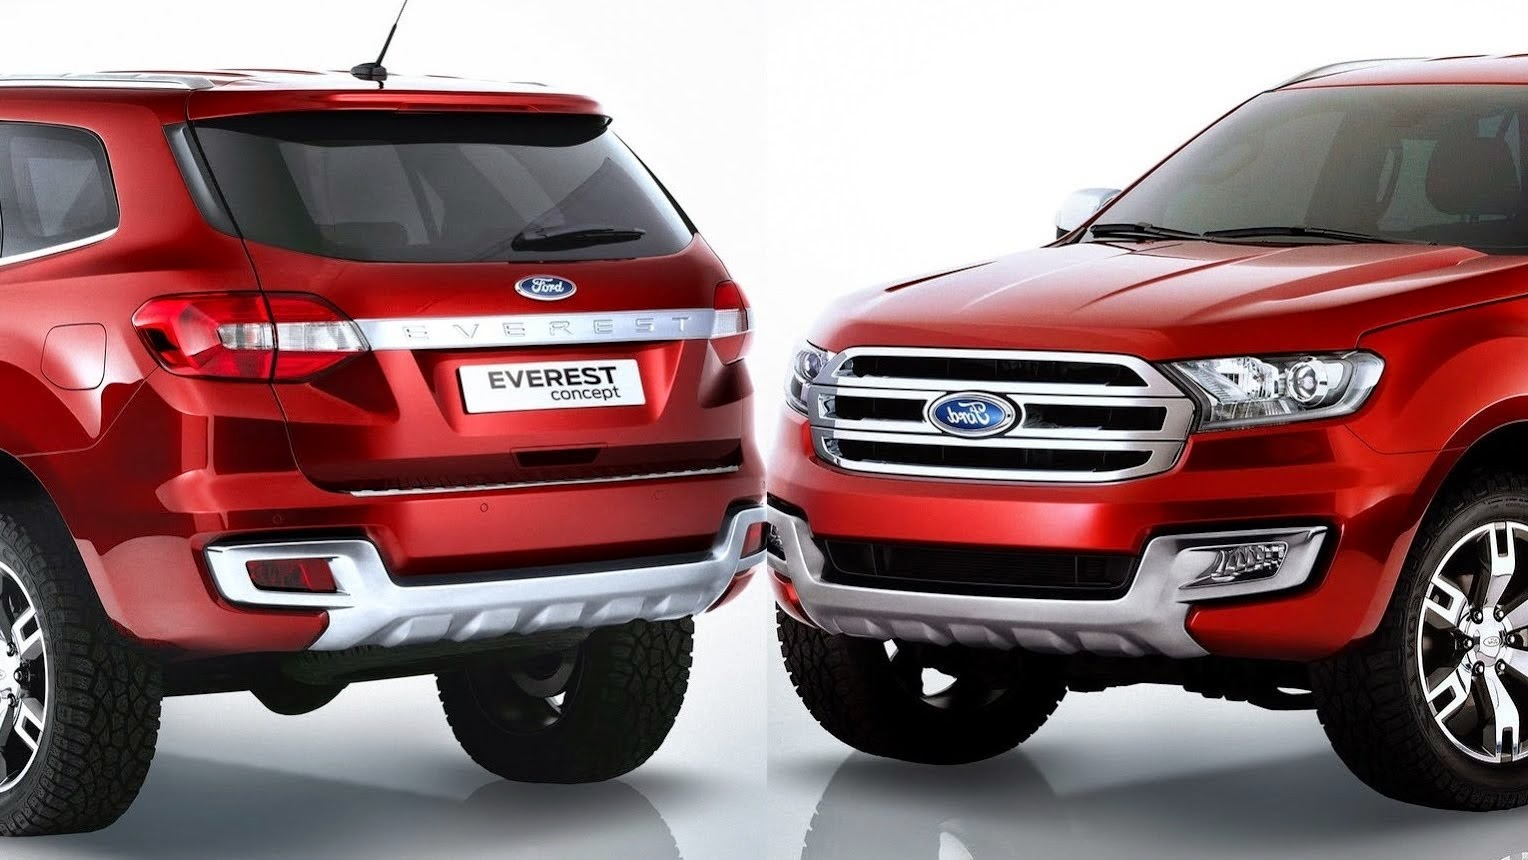 2015 ford everest reviews - Getting Sense Of 2015 Ford Endeavour From Thailand S New Everest Suv